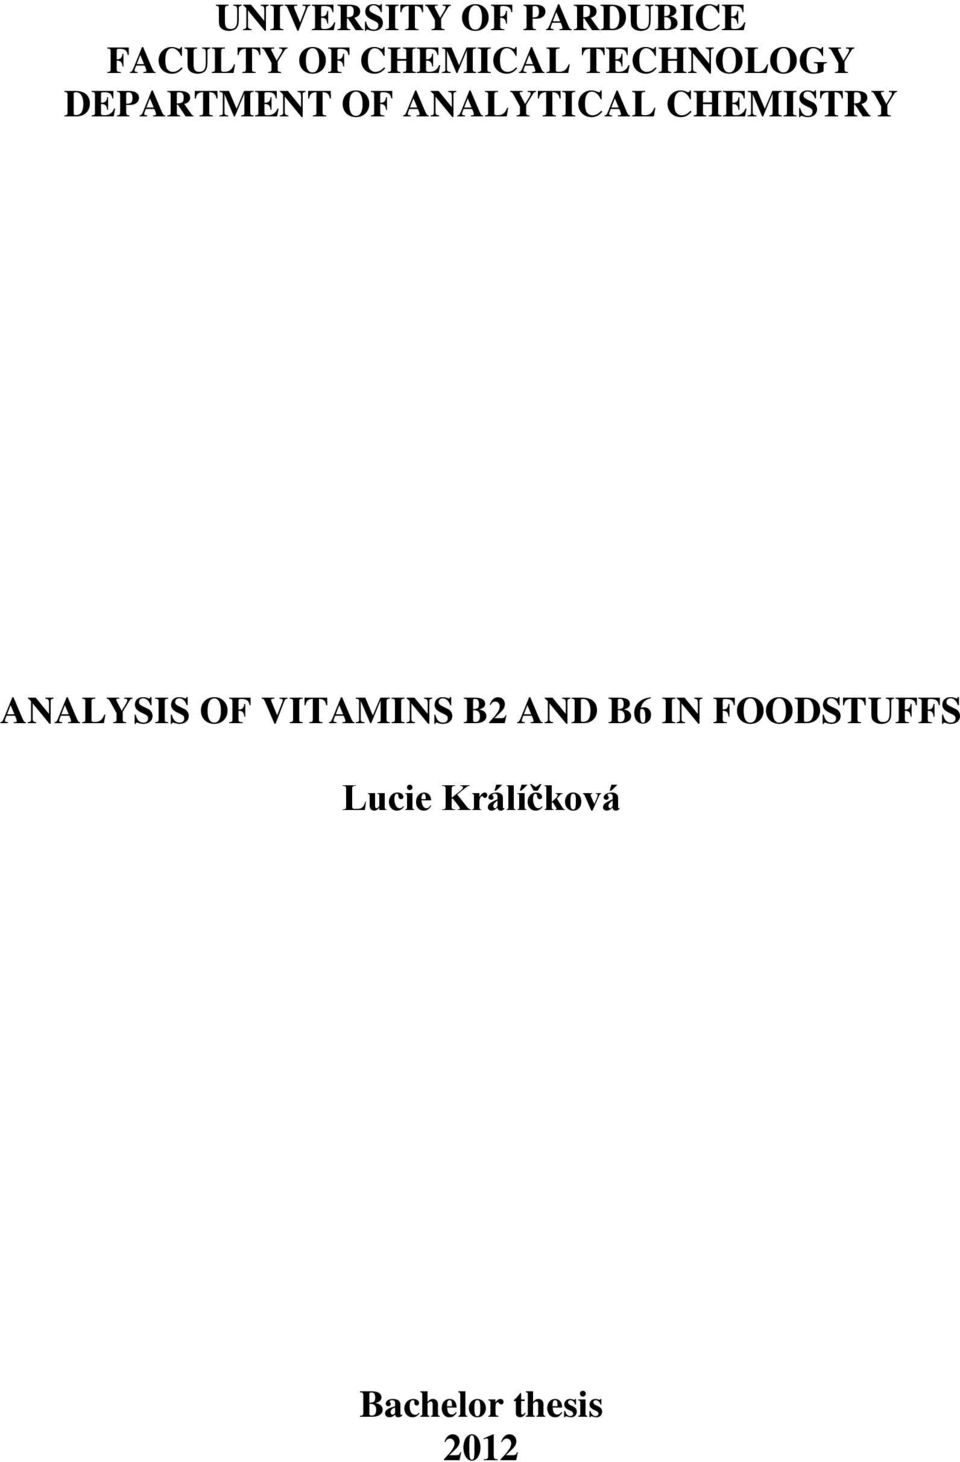 ANALYTICAL CHEMISTRY ANALYSIS OF VITAMINS